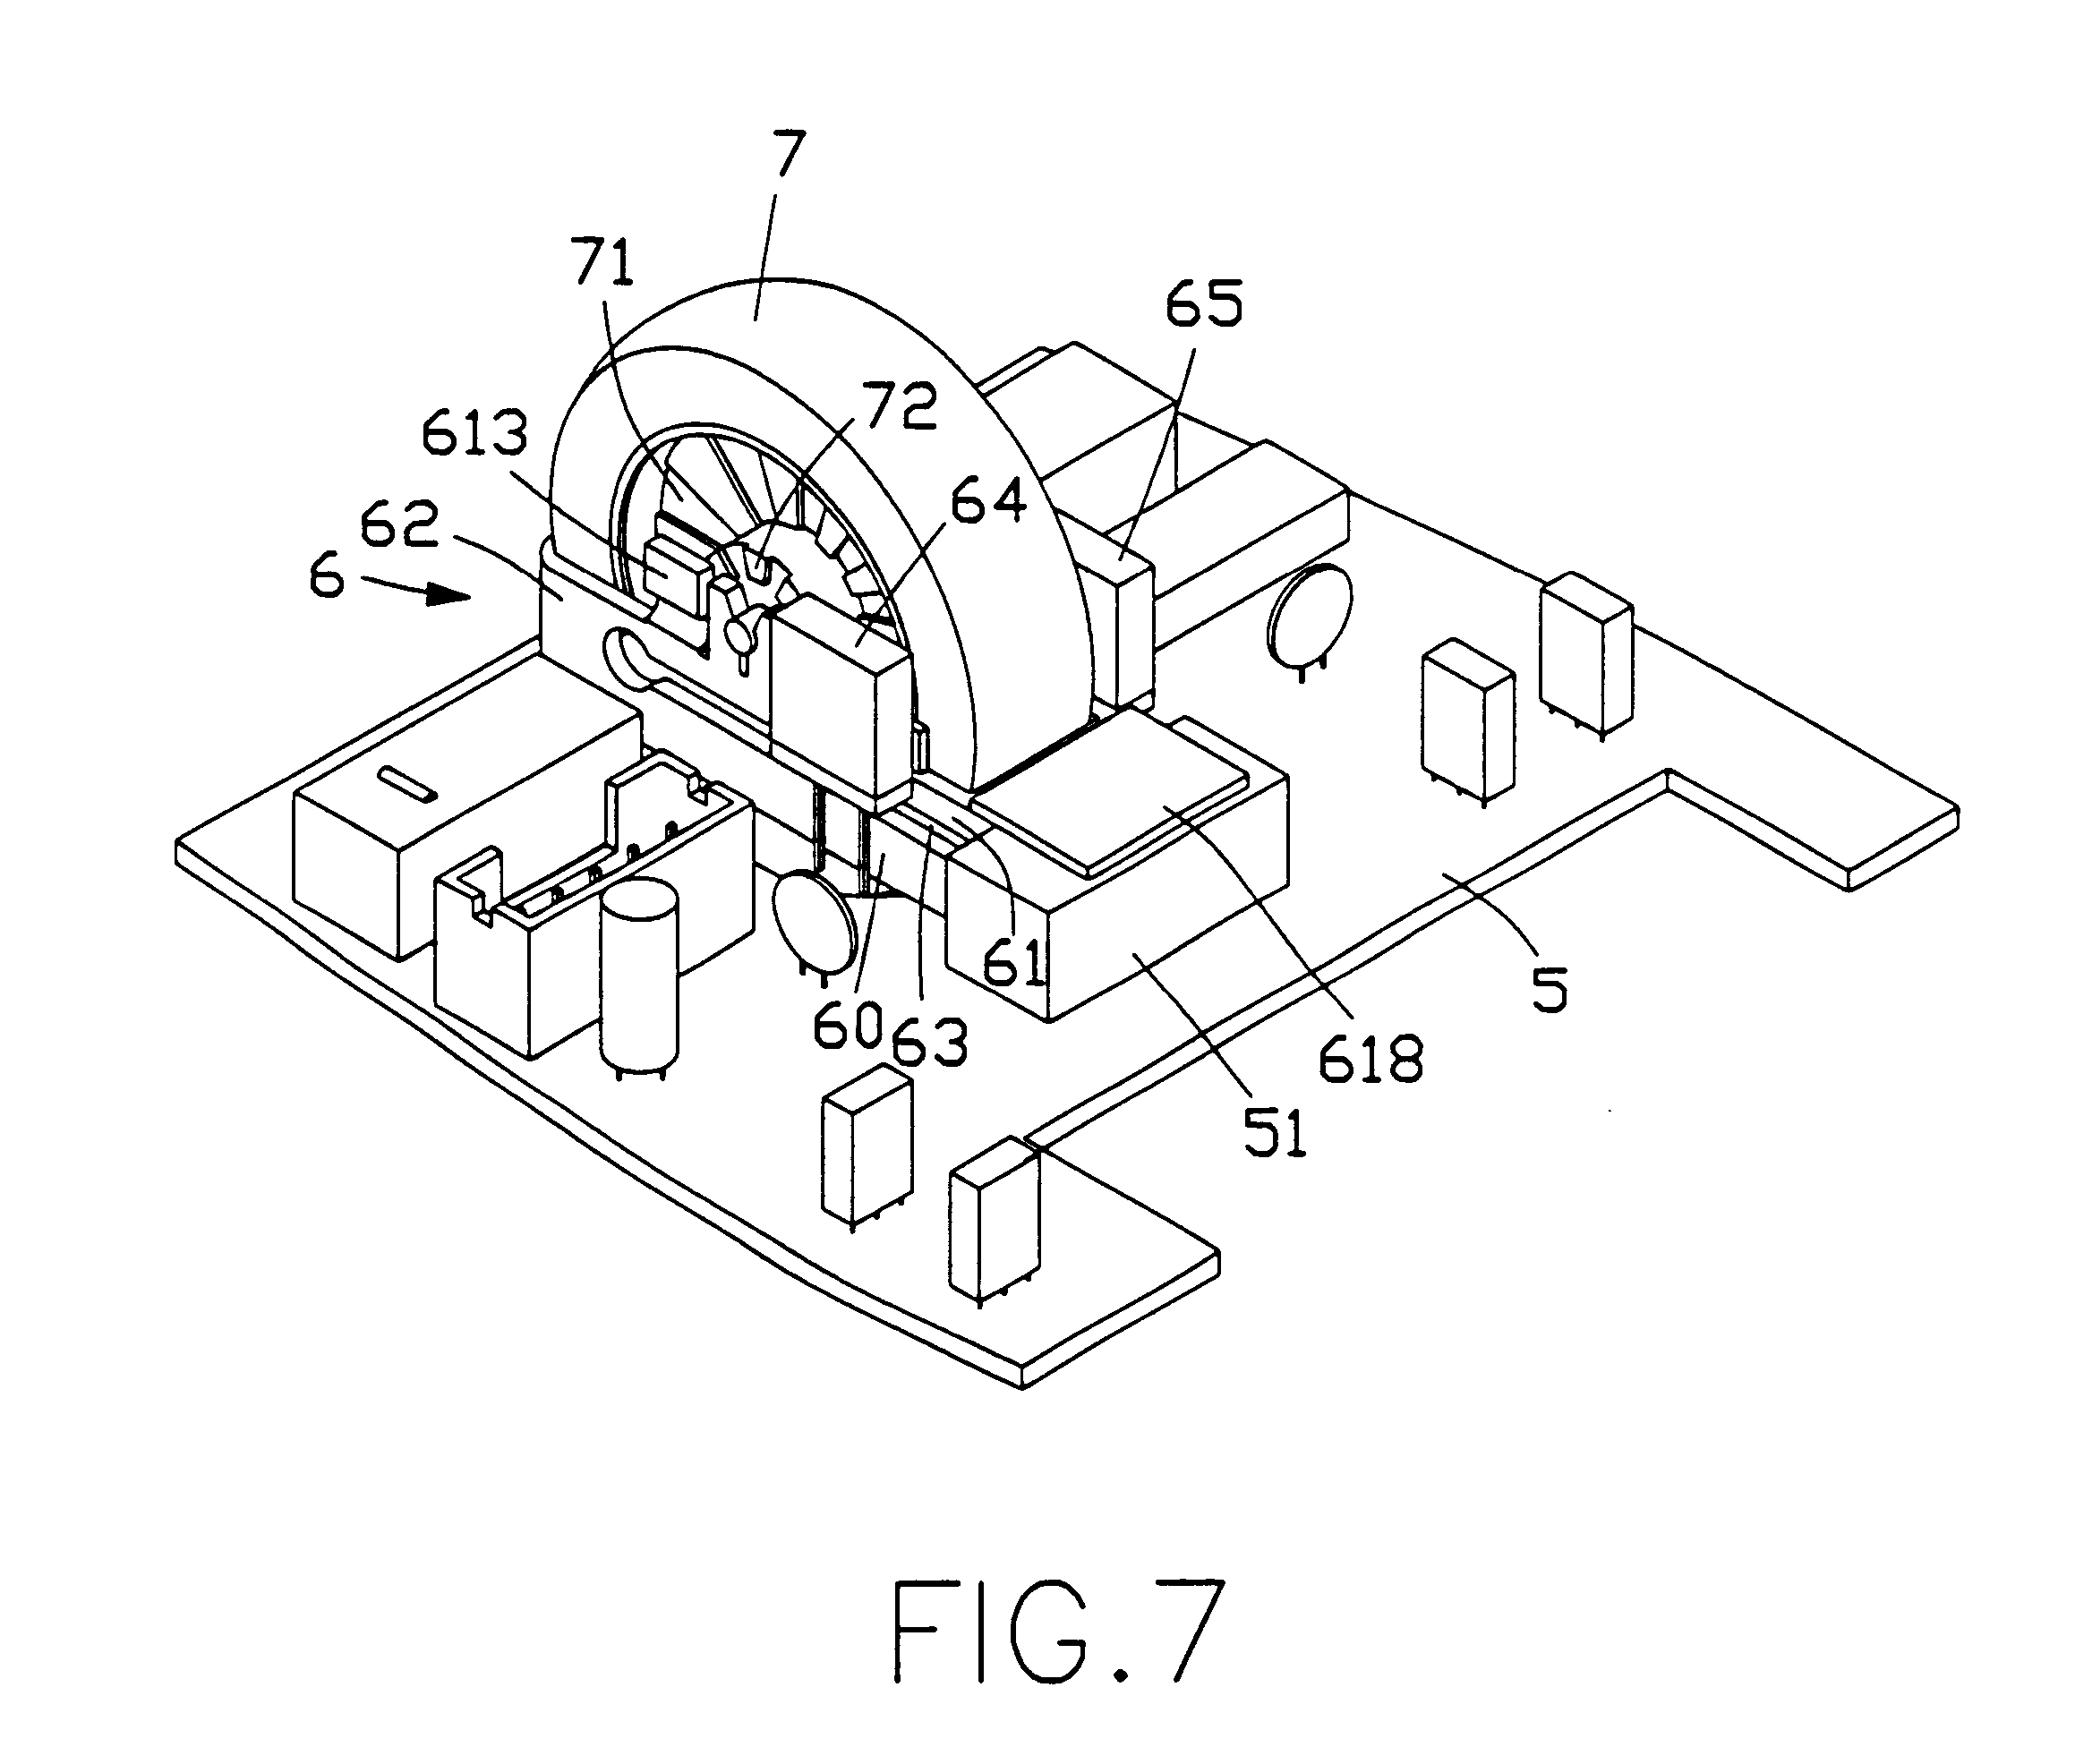 circuit board of the optical mouse